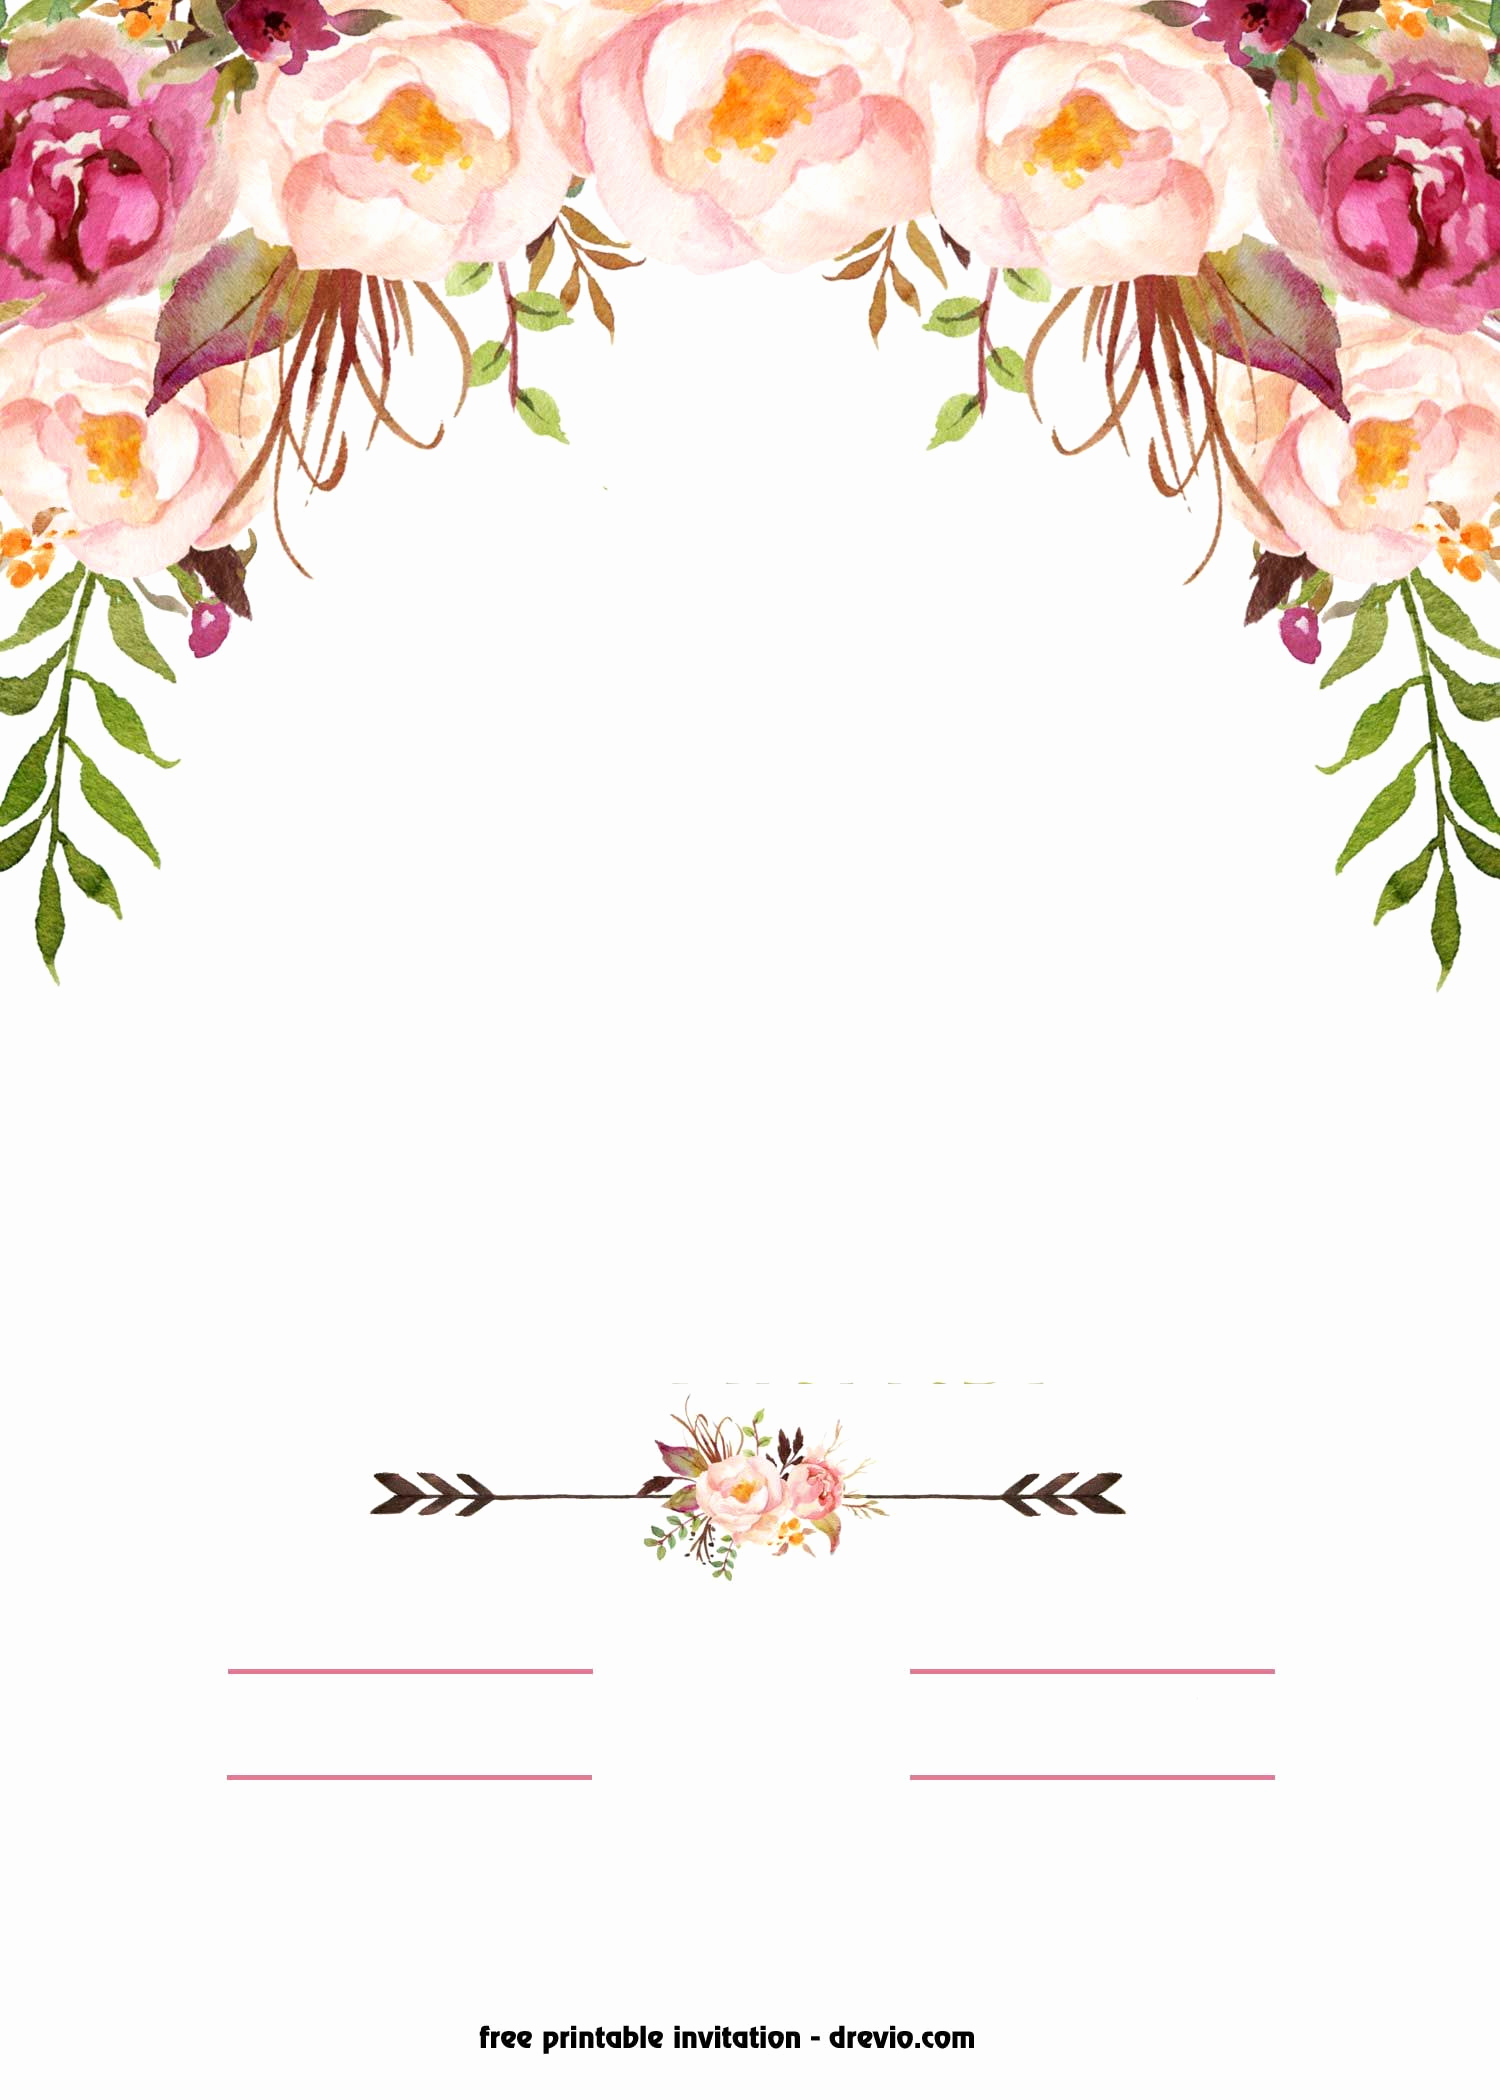 Free Invitation Template Printable Unique Awesome Free Printable Boho Chic Flower Baby Shower